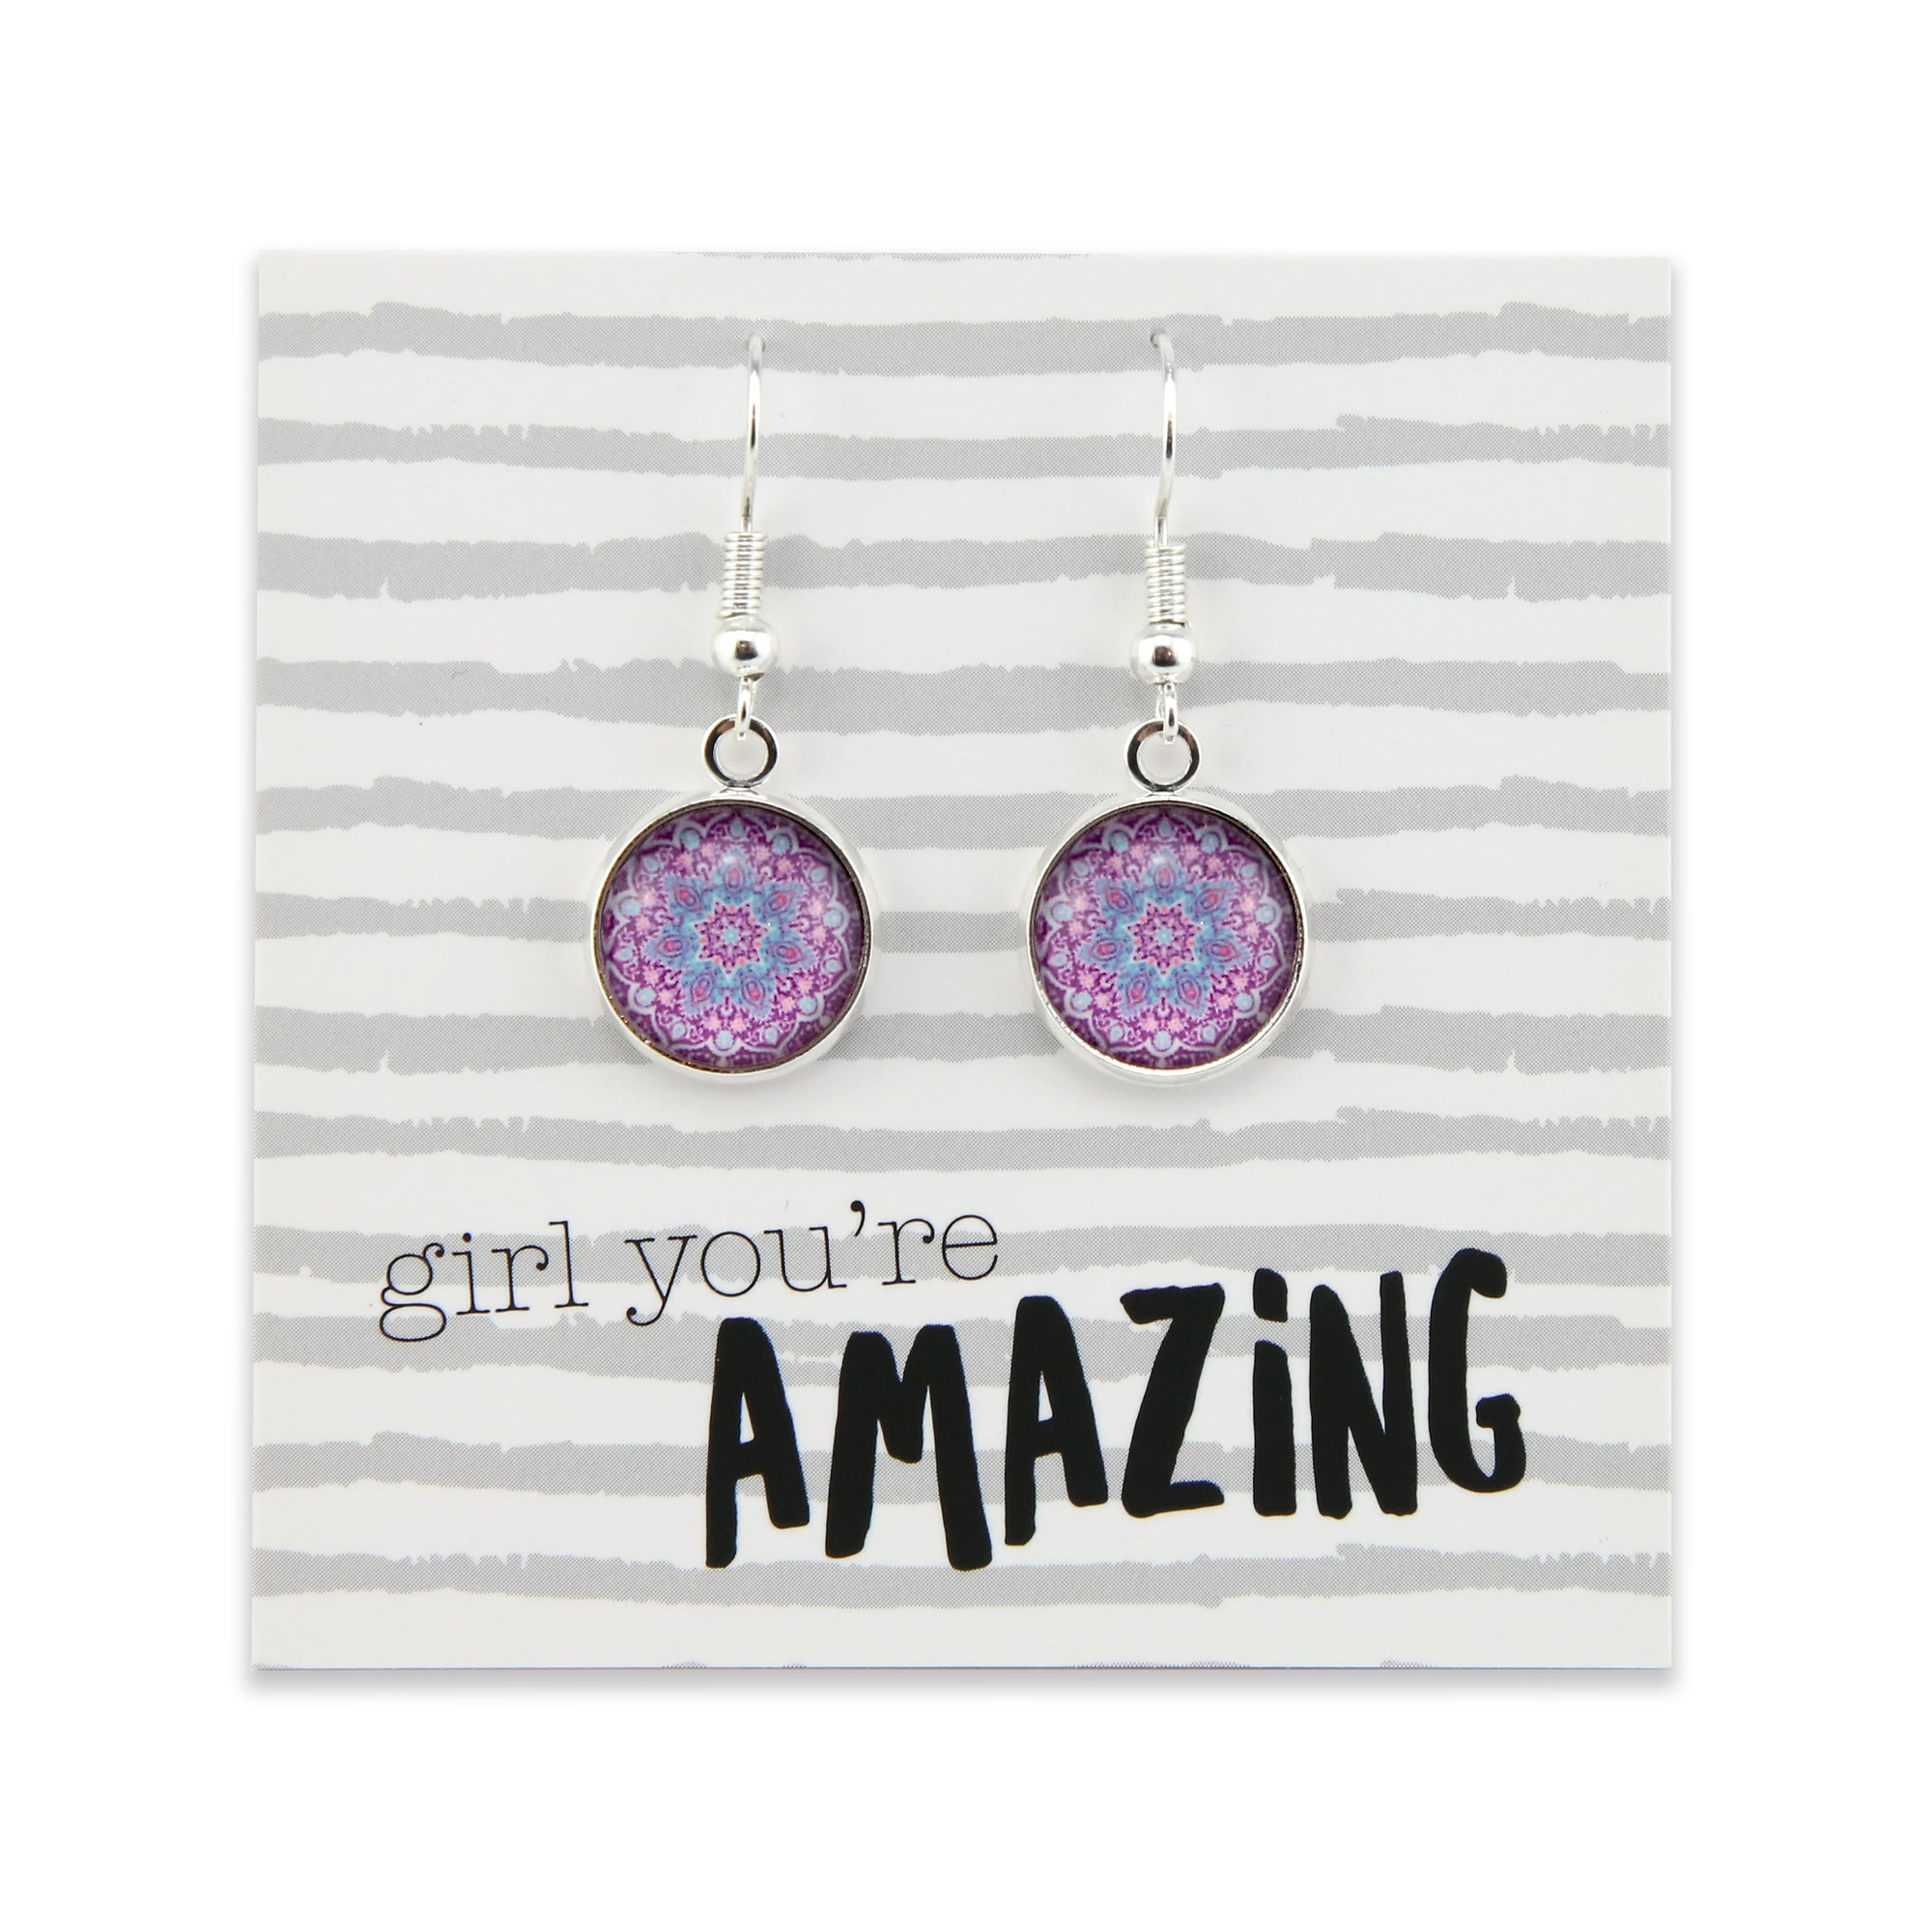 BOHO Collection - Girl You're Amazing - Stainless Steel Bright Silver Dangle Earrings - Star gazer (9305)